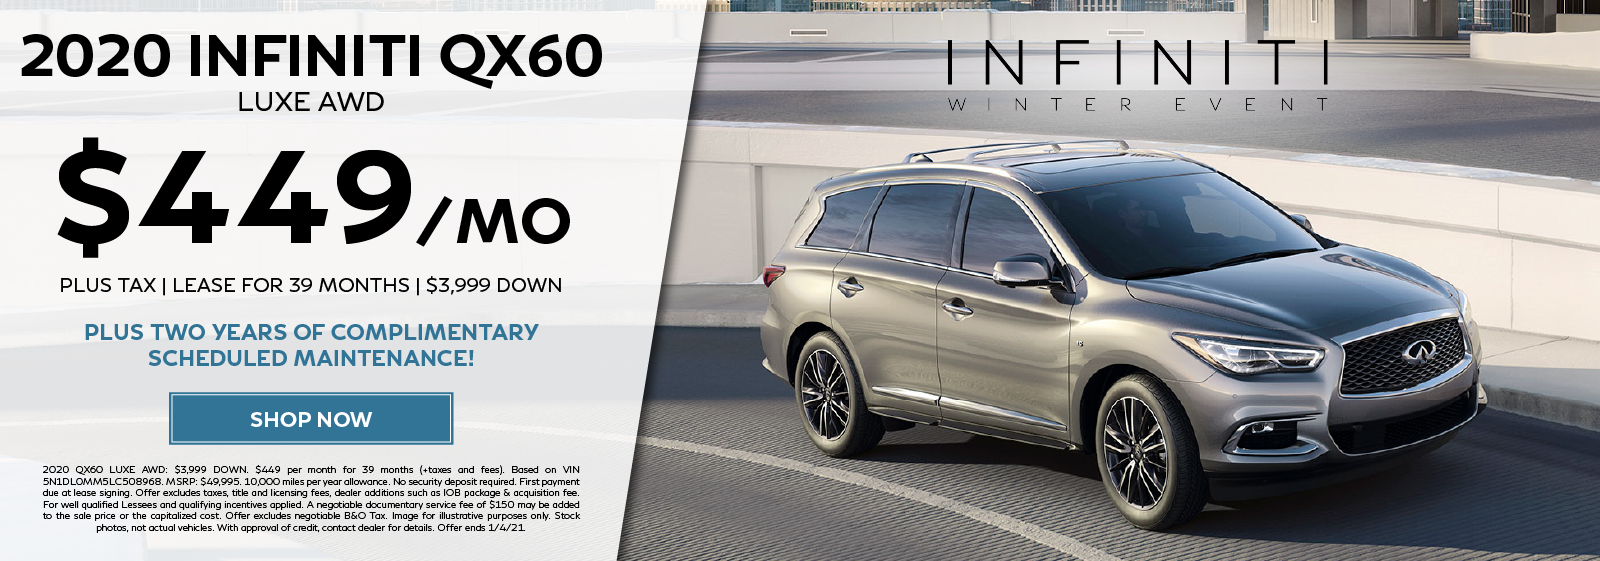 Lease a new 2020 QX60 LUXE AWD for $449 per month for 39 months plus two years of complimentary scheduled maintenance. Click to shop now.